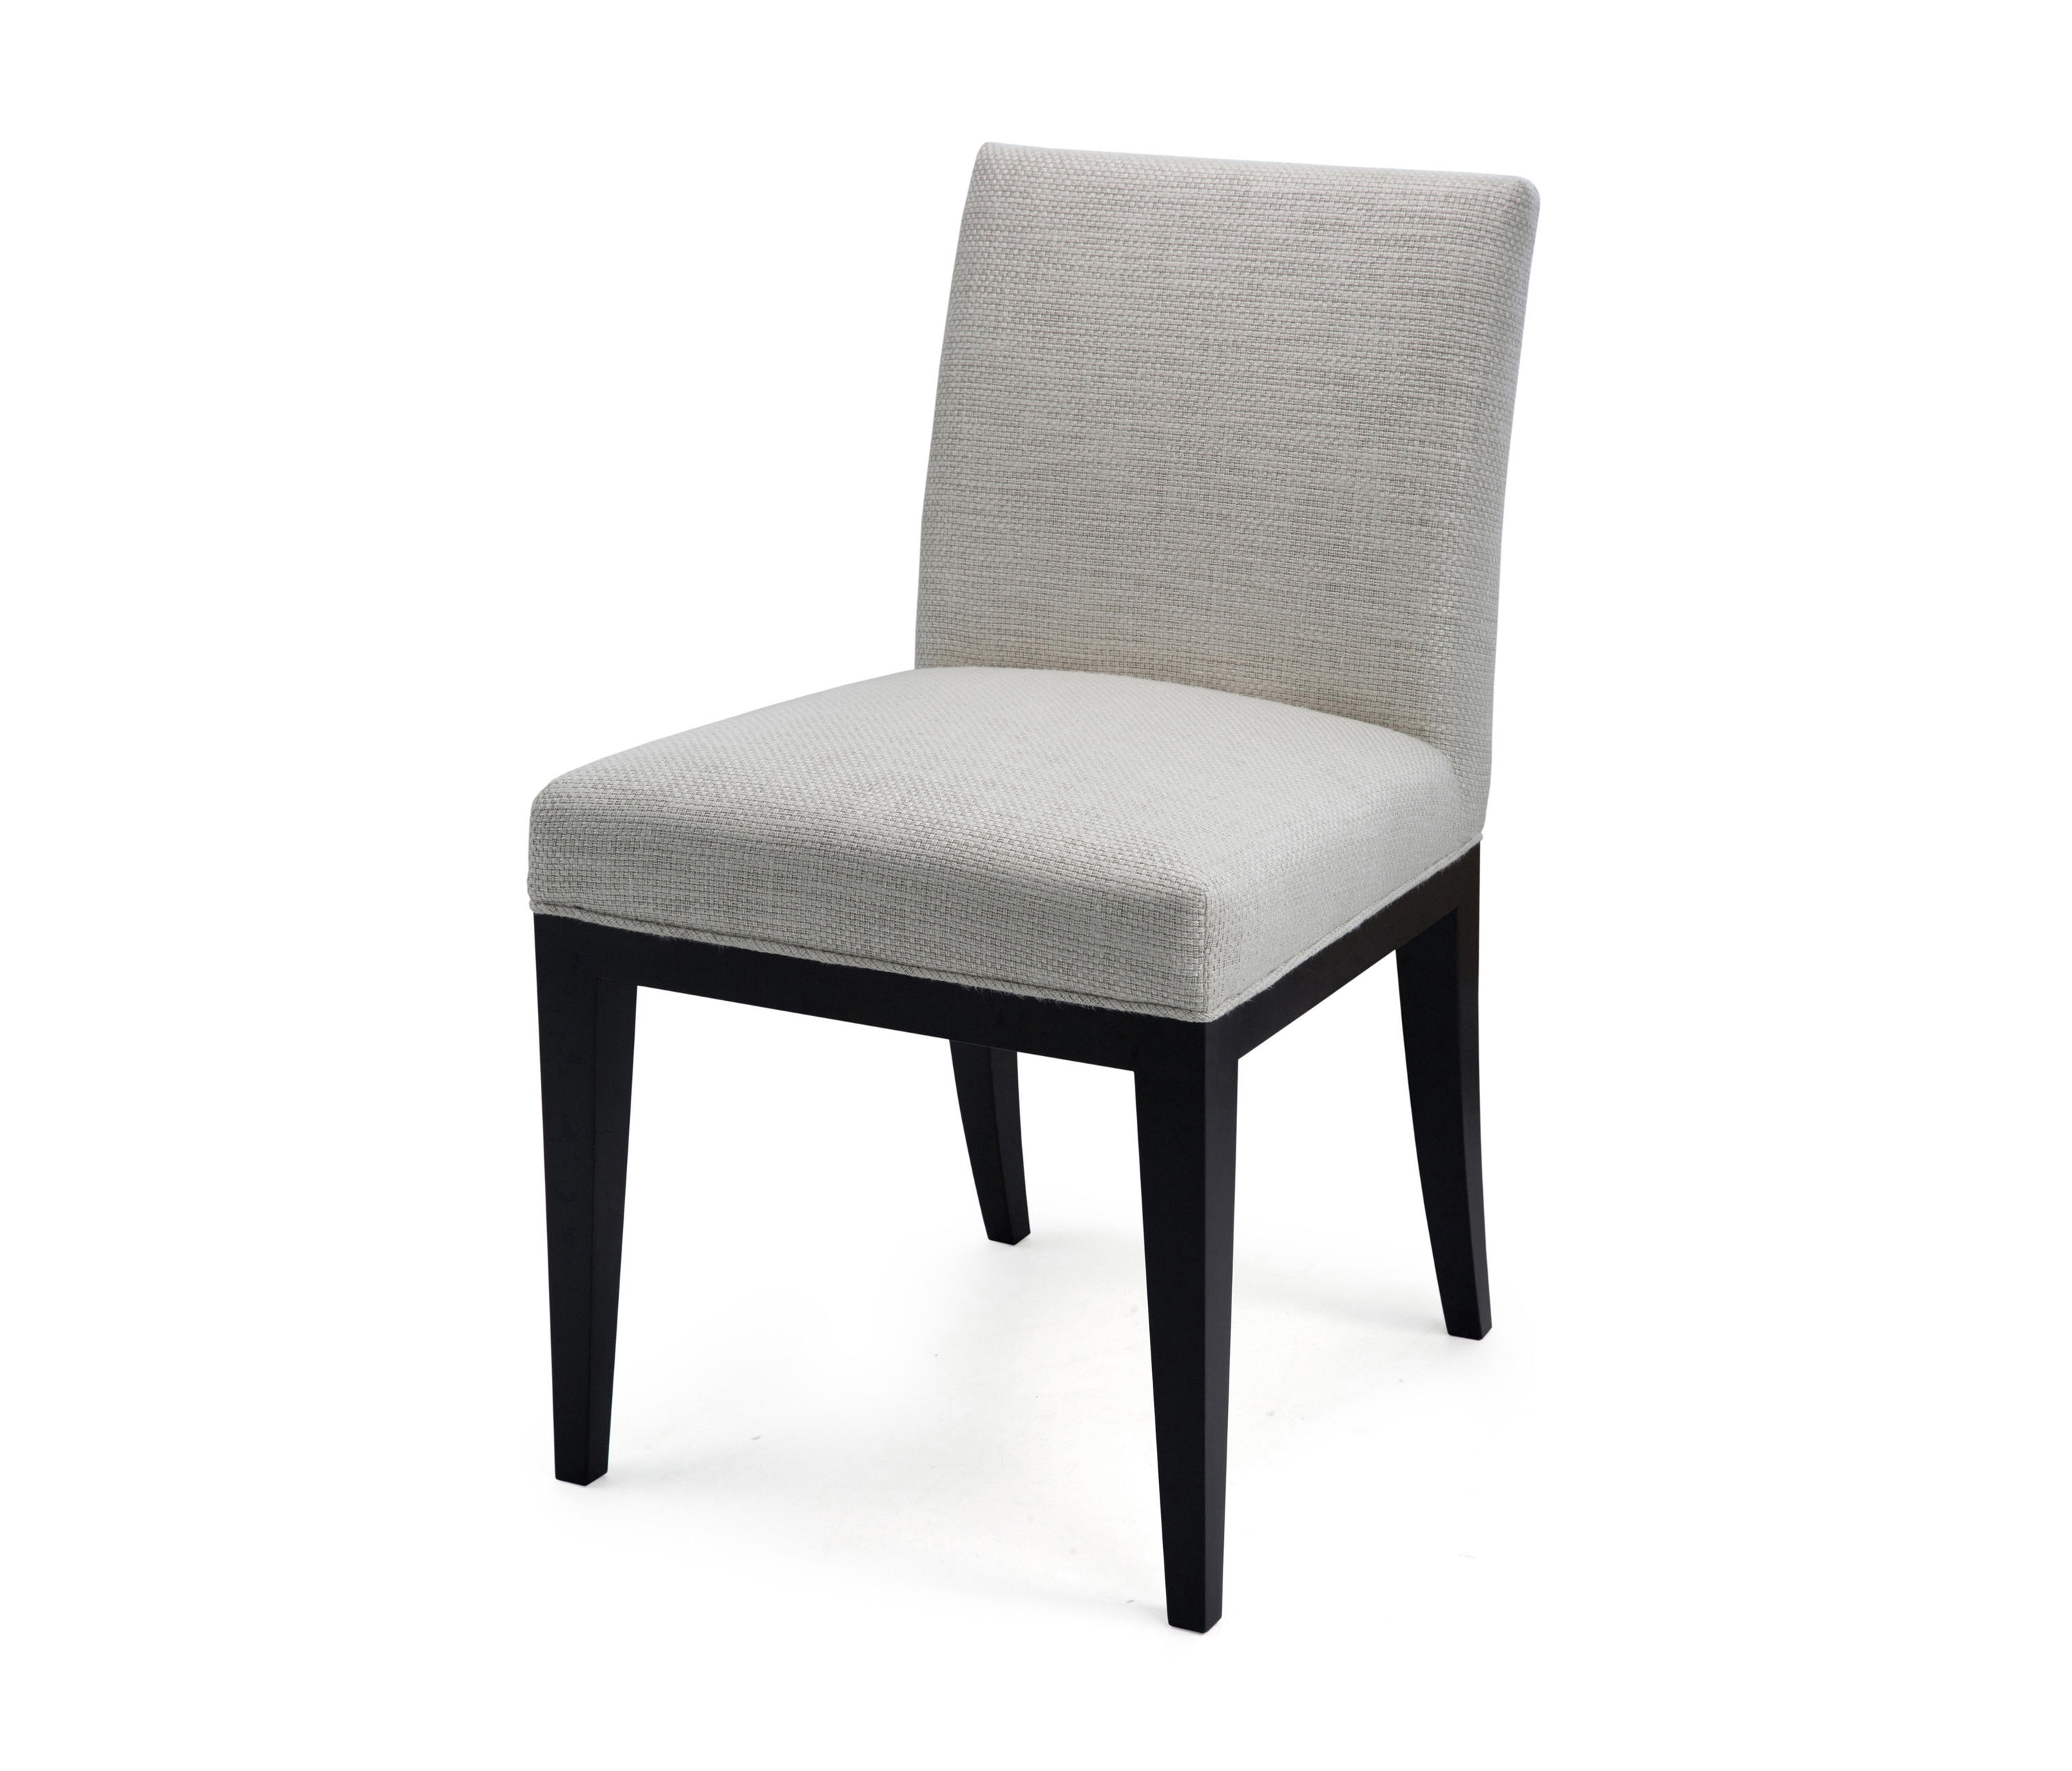 Captivating Byron Dining Chair By The Sofa U0026 Chair Company Ltd | Restaurant Chairs ...